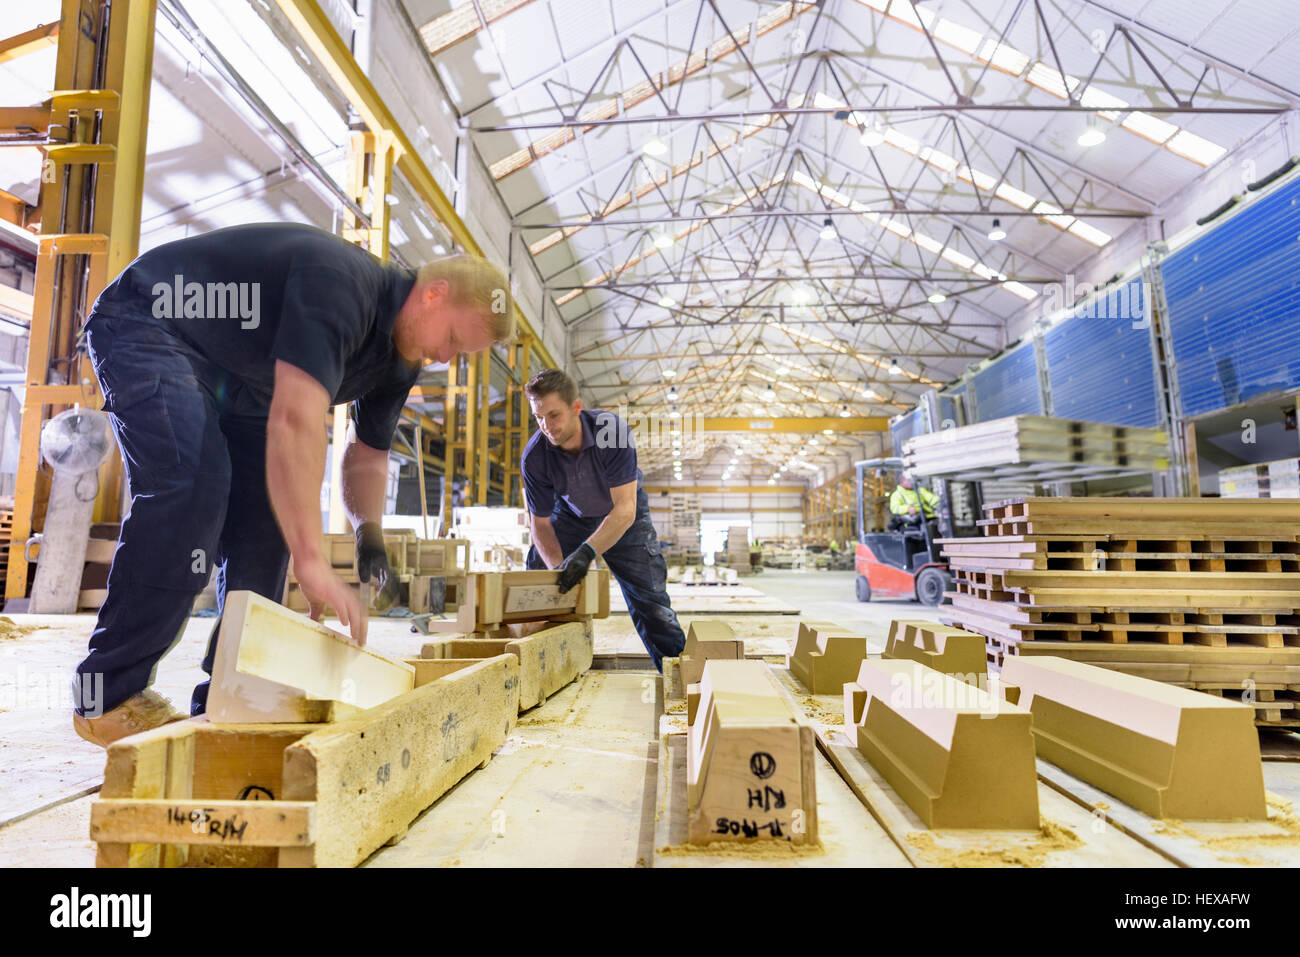 Workers moulding stone in architectural stone factory - Stock Image